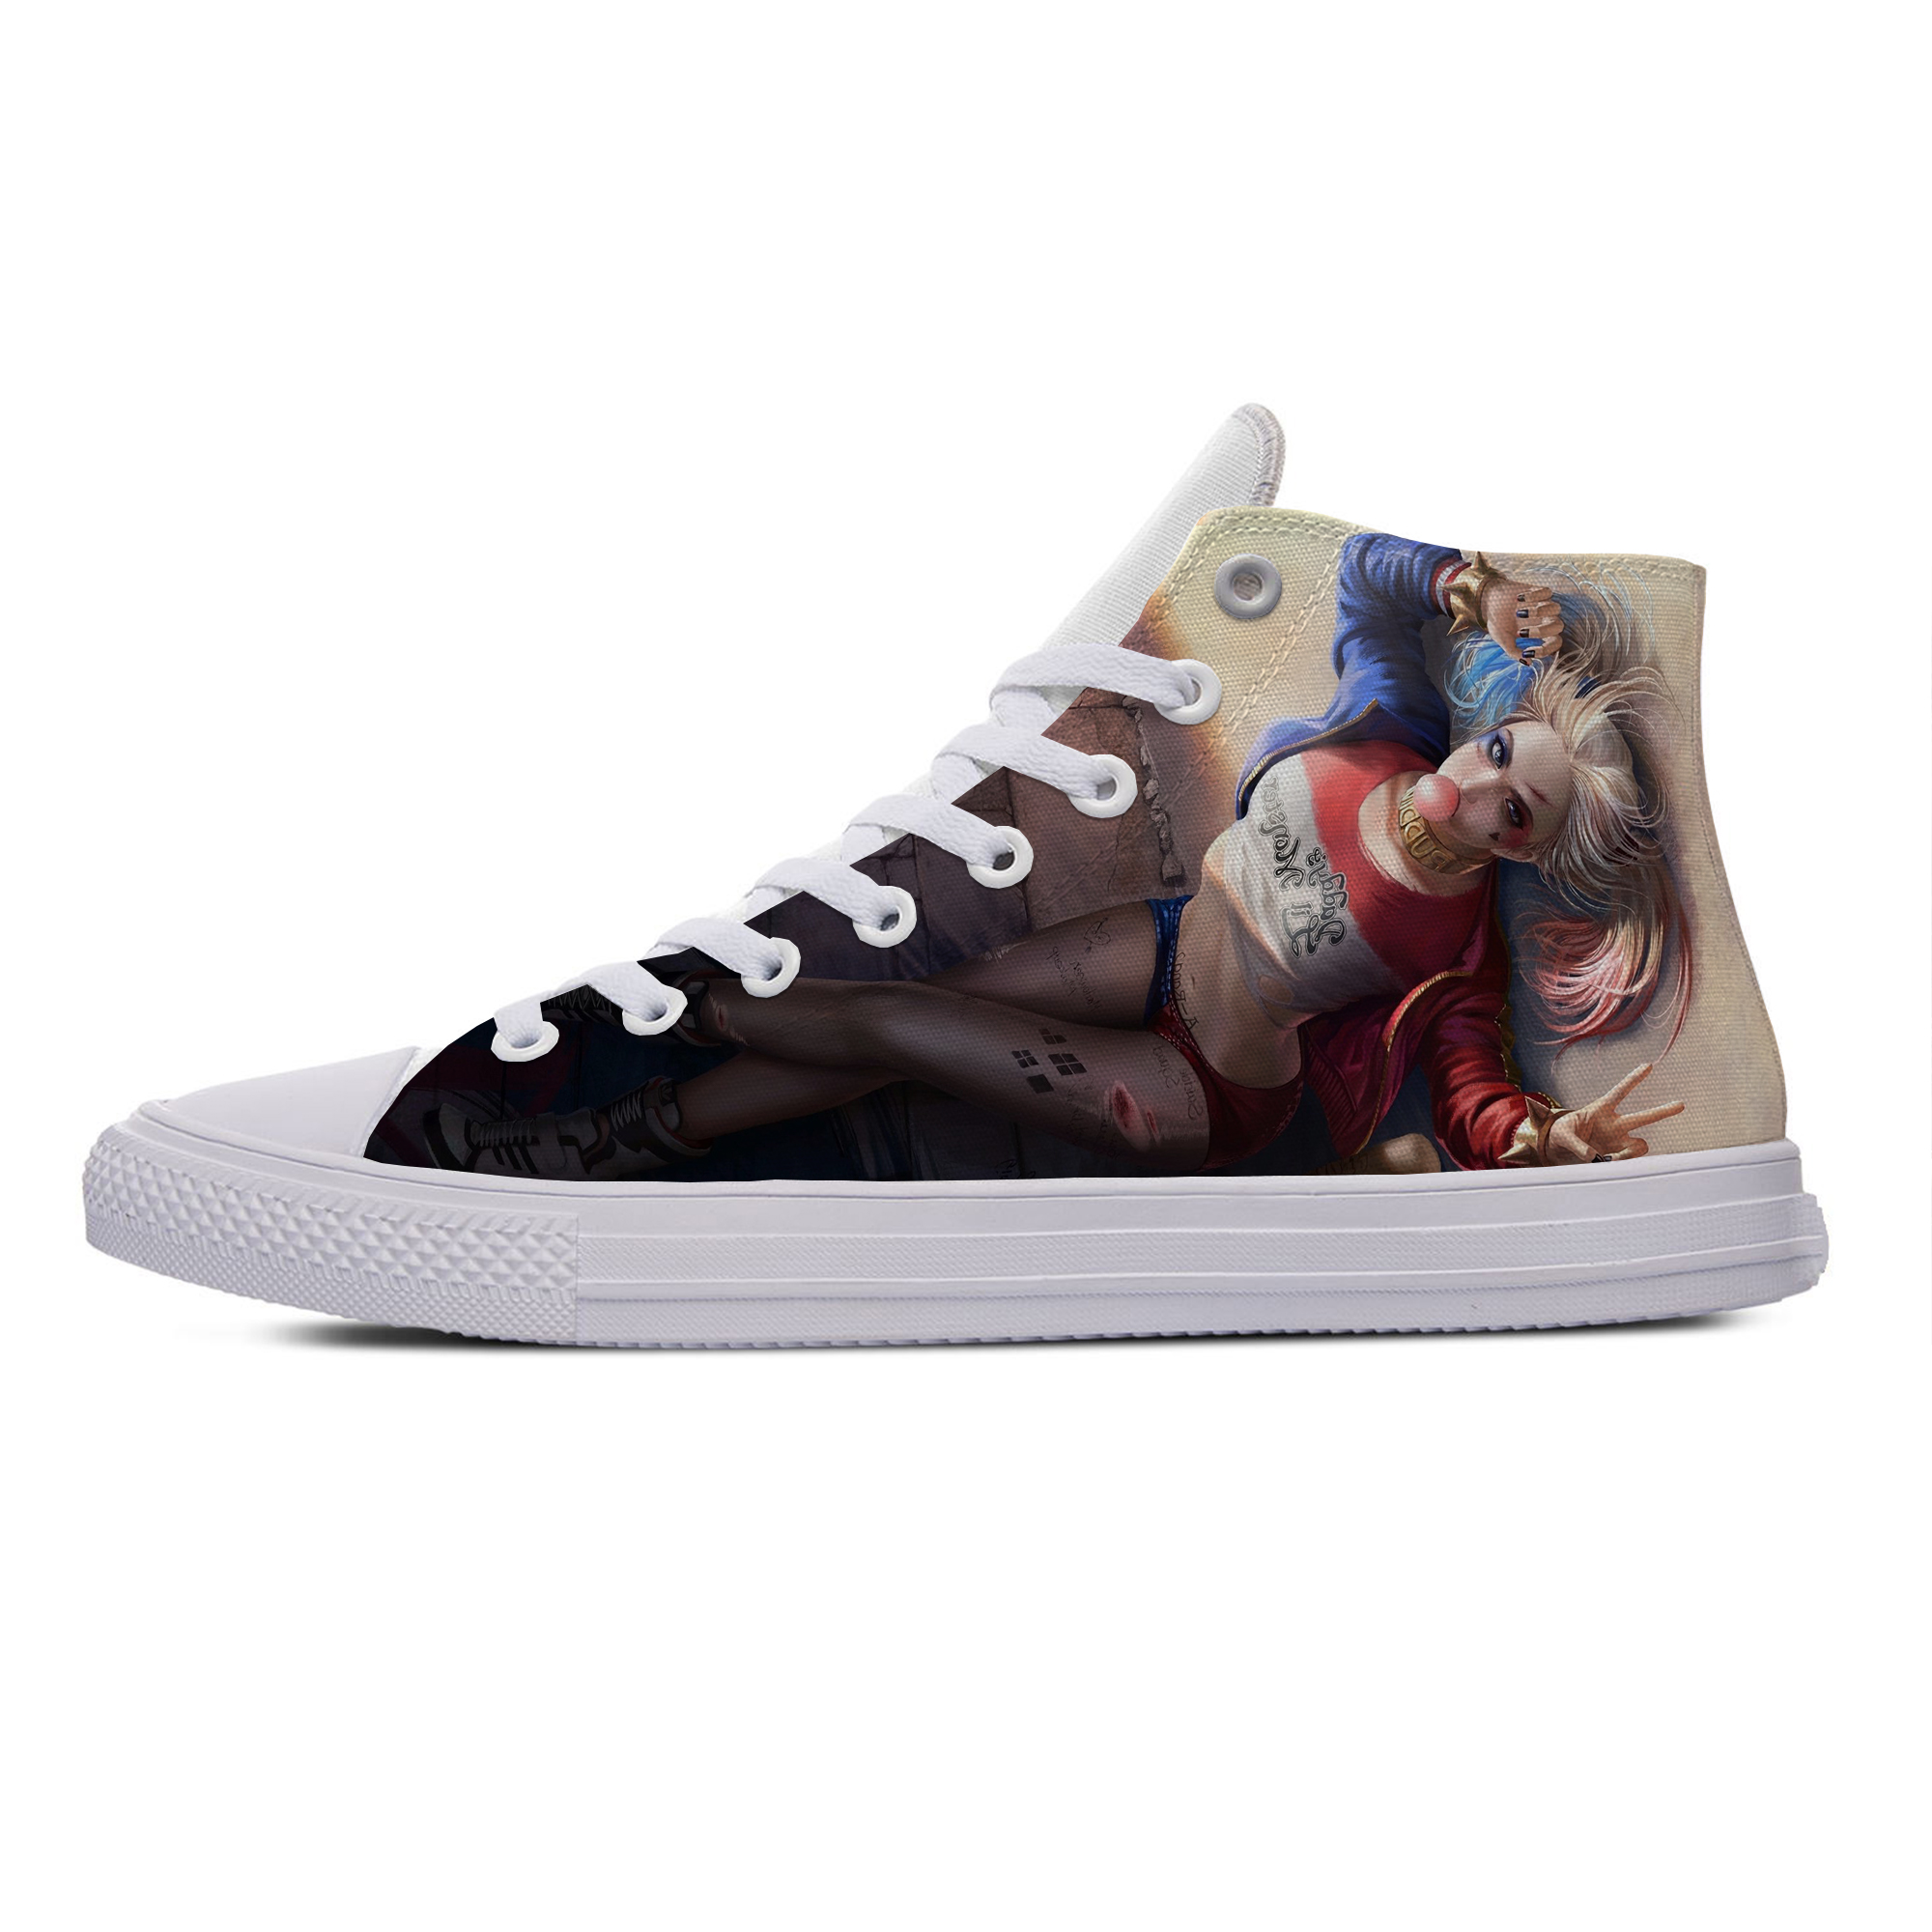 Harley Quinn DC Super Villain Hot Cool Casual Canvas Shoes High Top Breathable Lightweight Sneakers 3D Print For Men Women